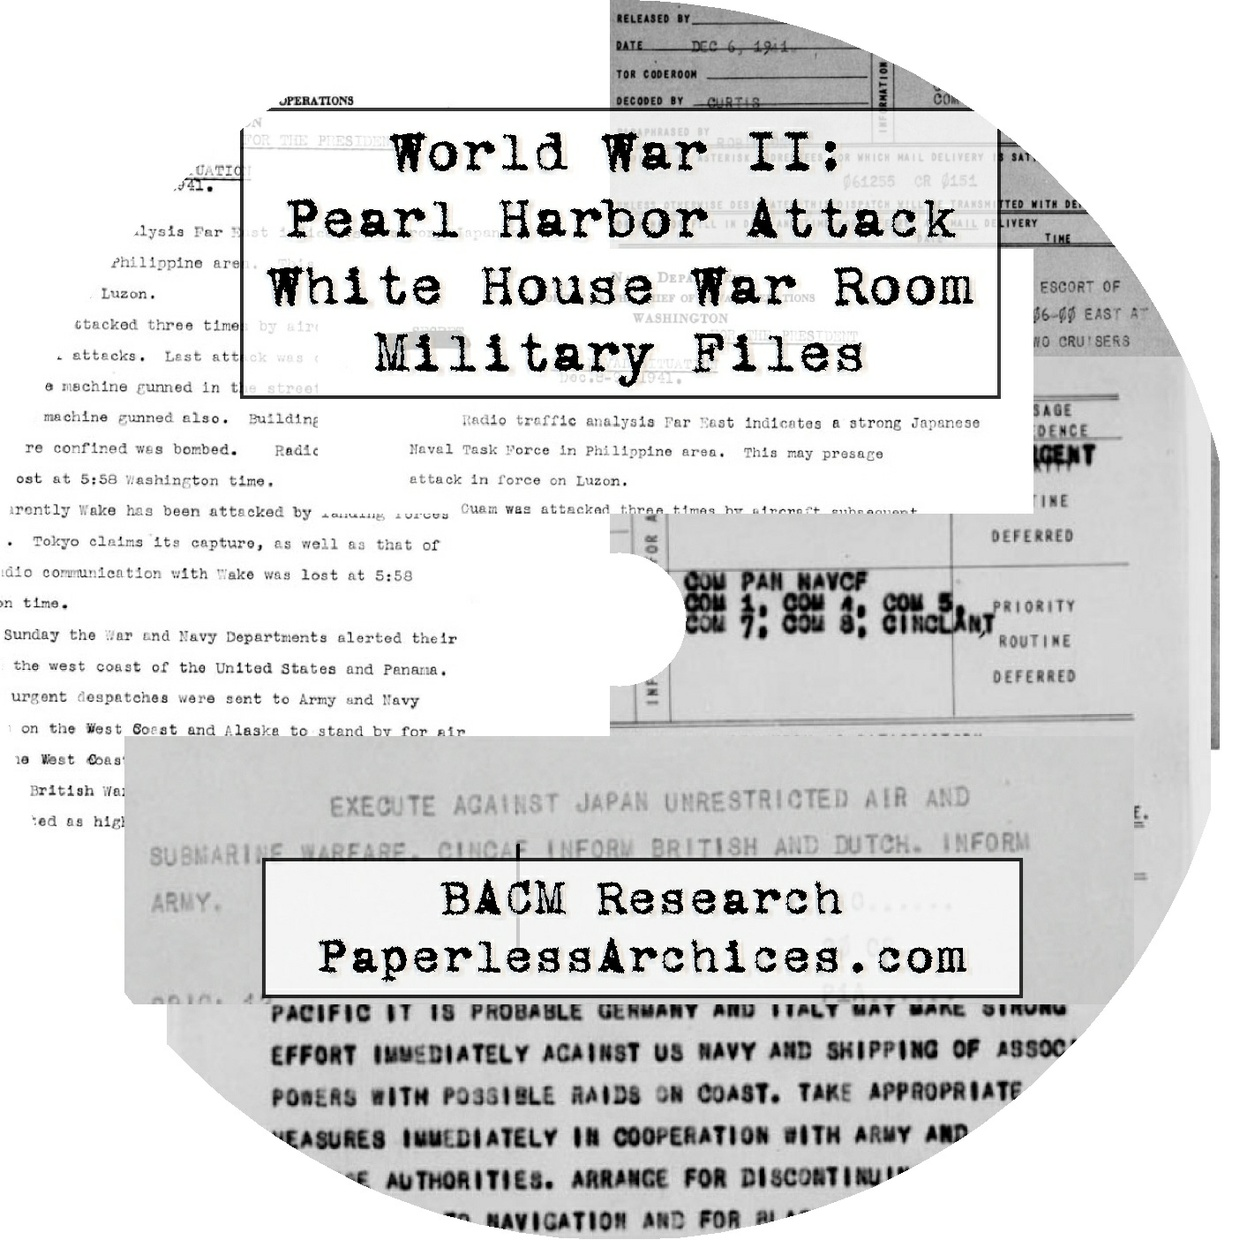 World War II: Pearl Harbor Attack: White House War Room Military Files - Download